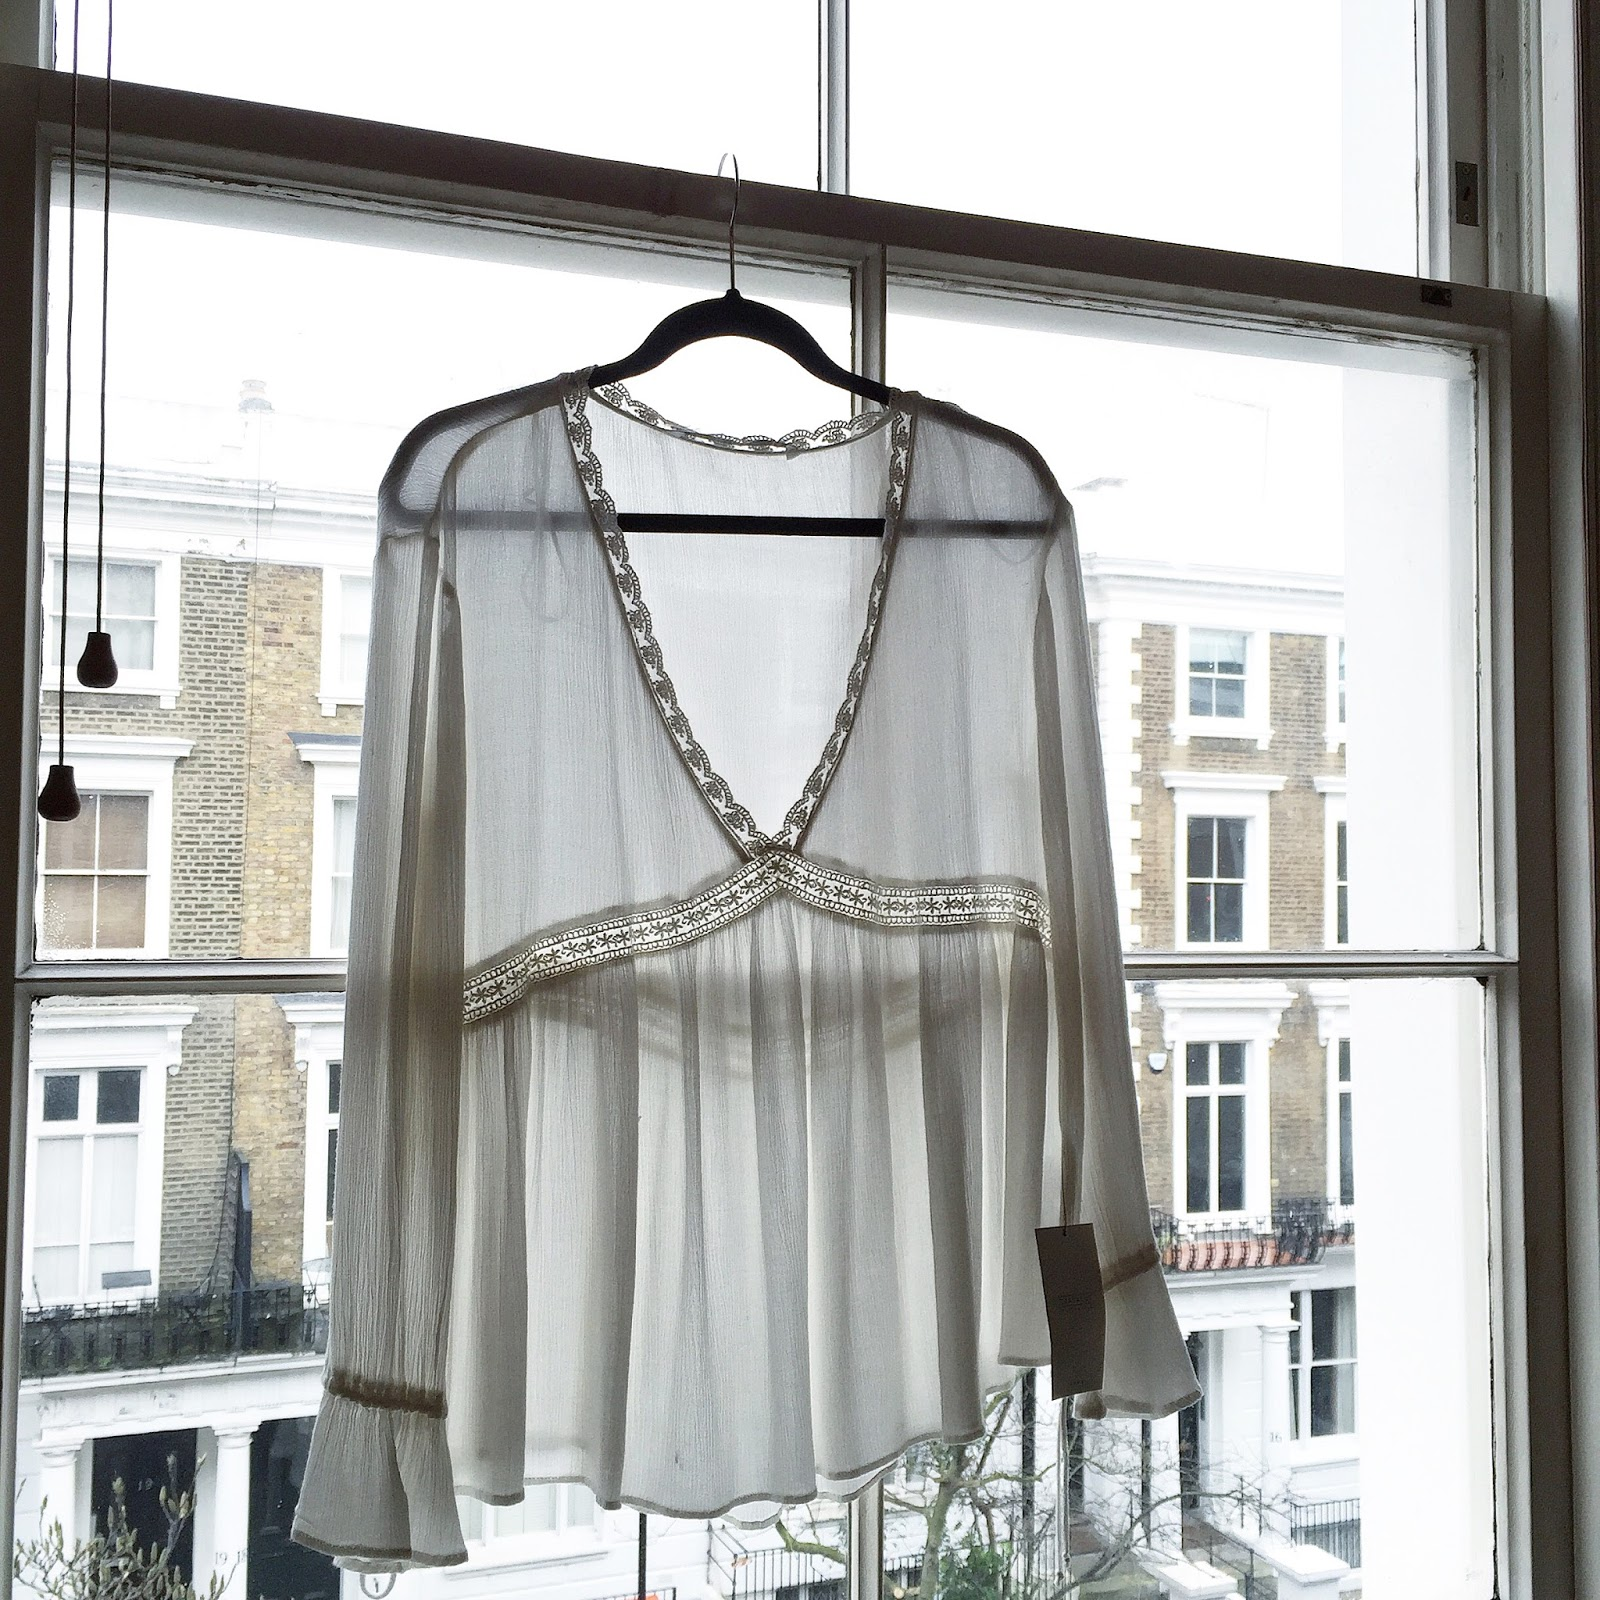 a cream coloured boho style blouse from Zara sitting on a window sill on London